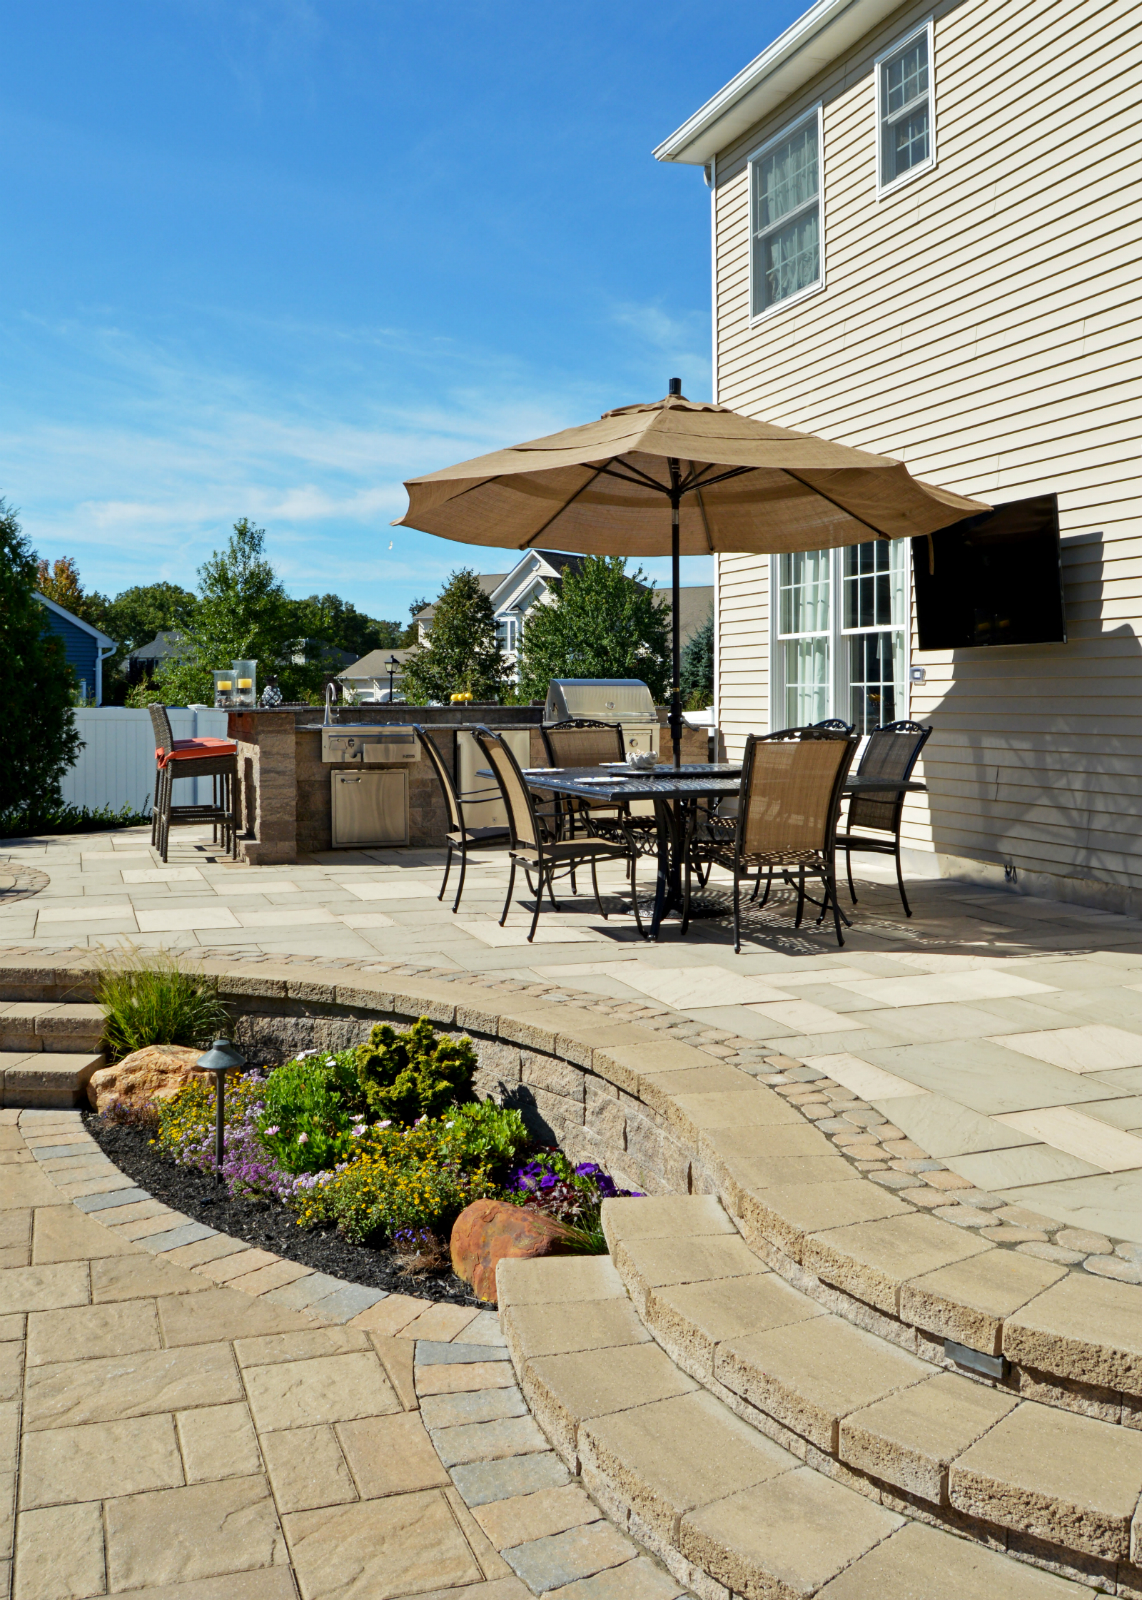 Selecting the right jointing style and color for patios in Hauppauge NY